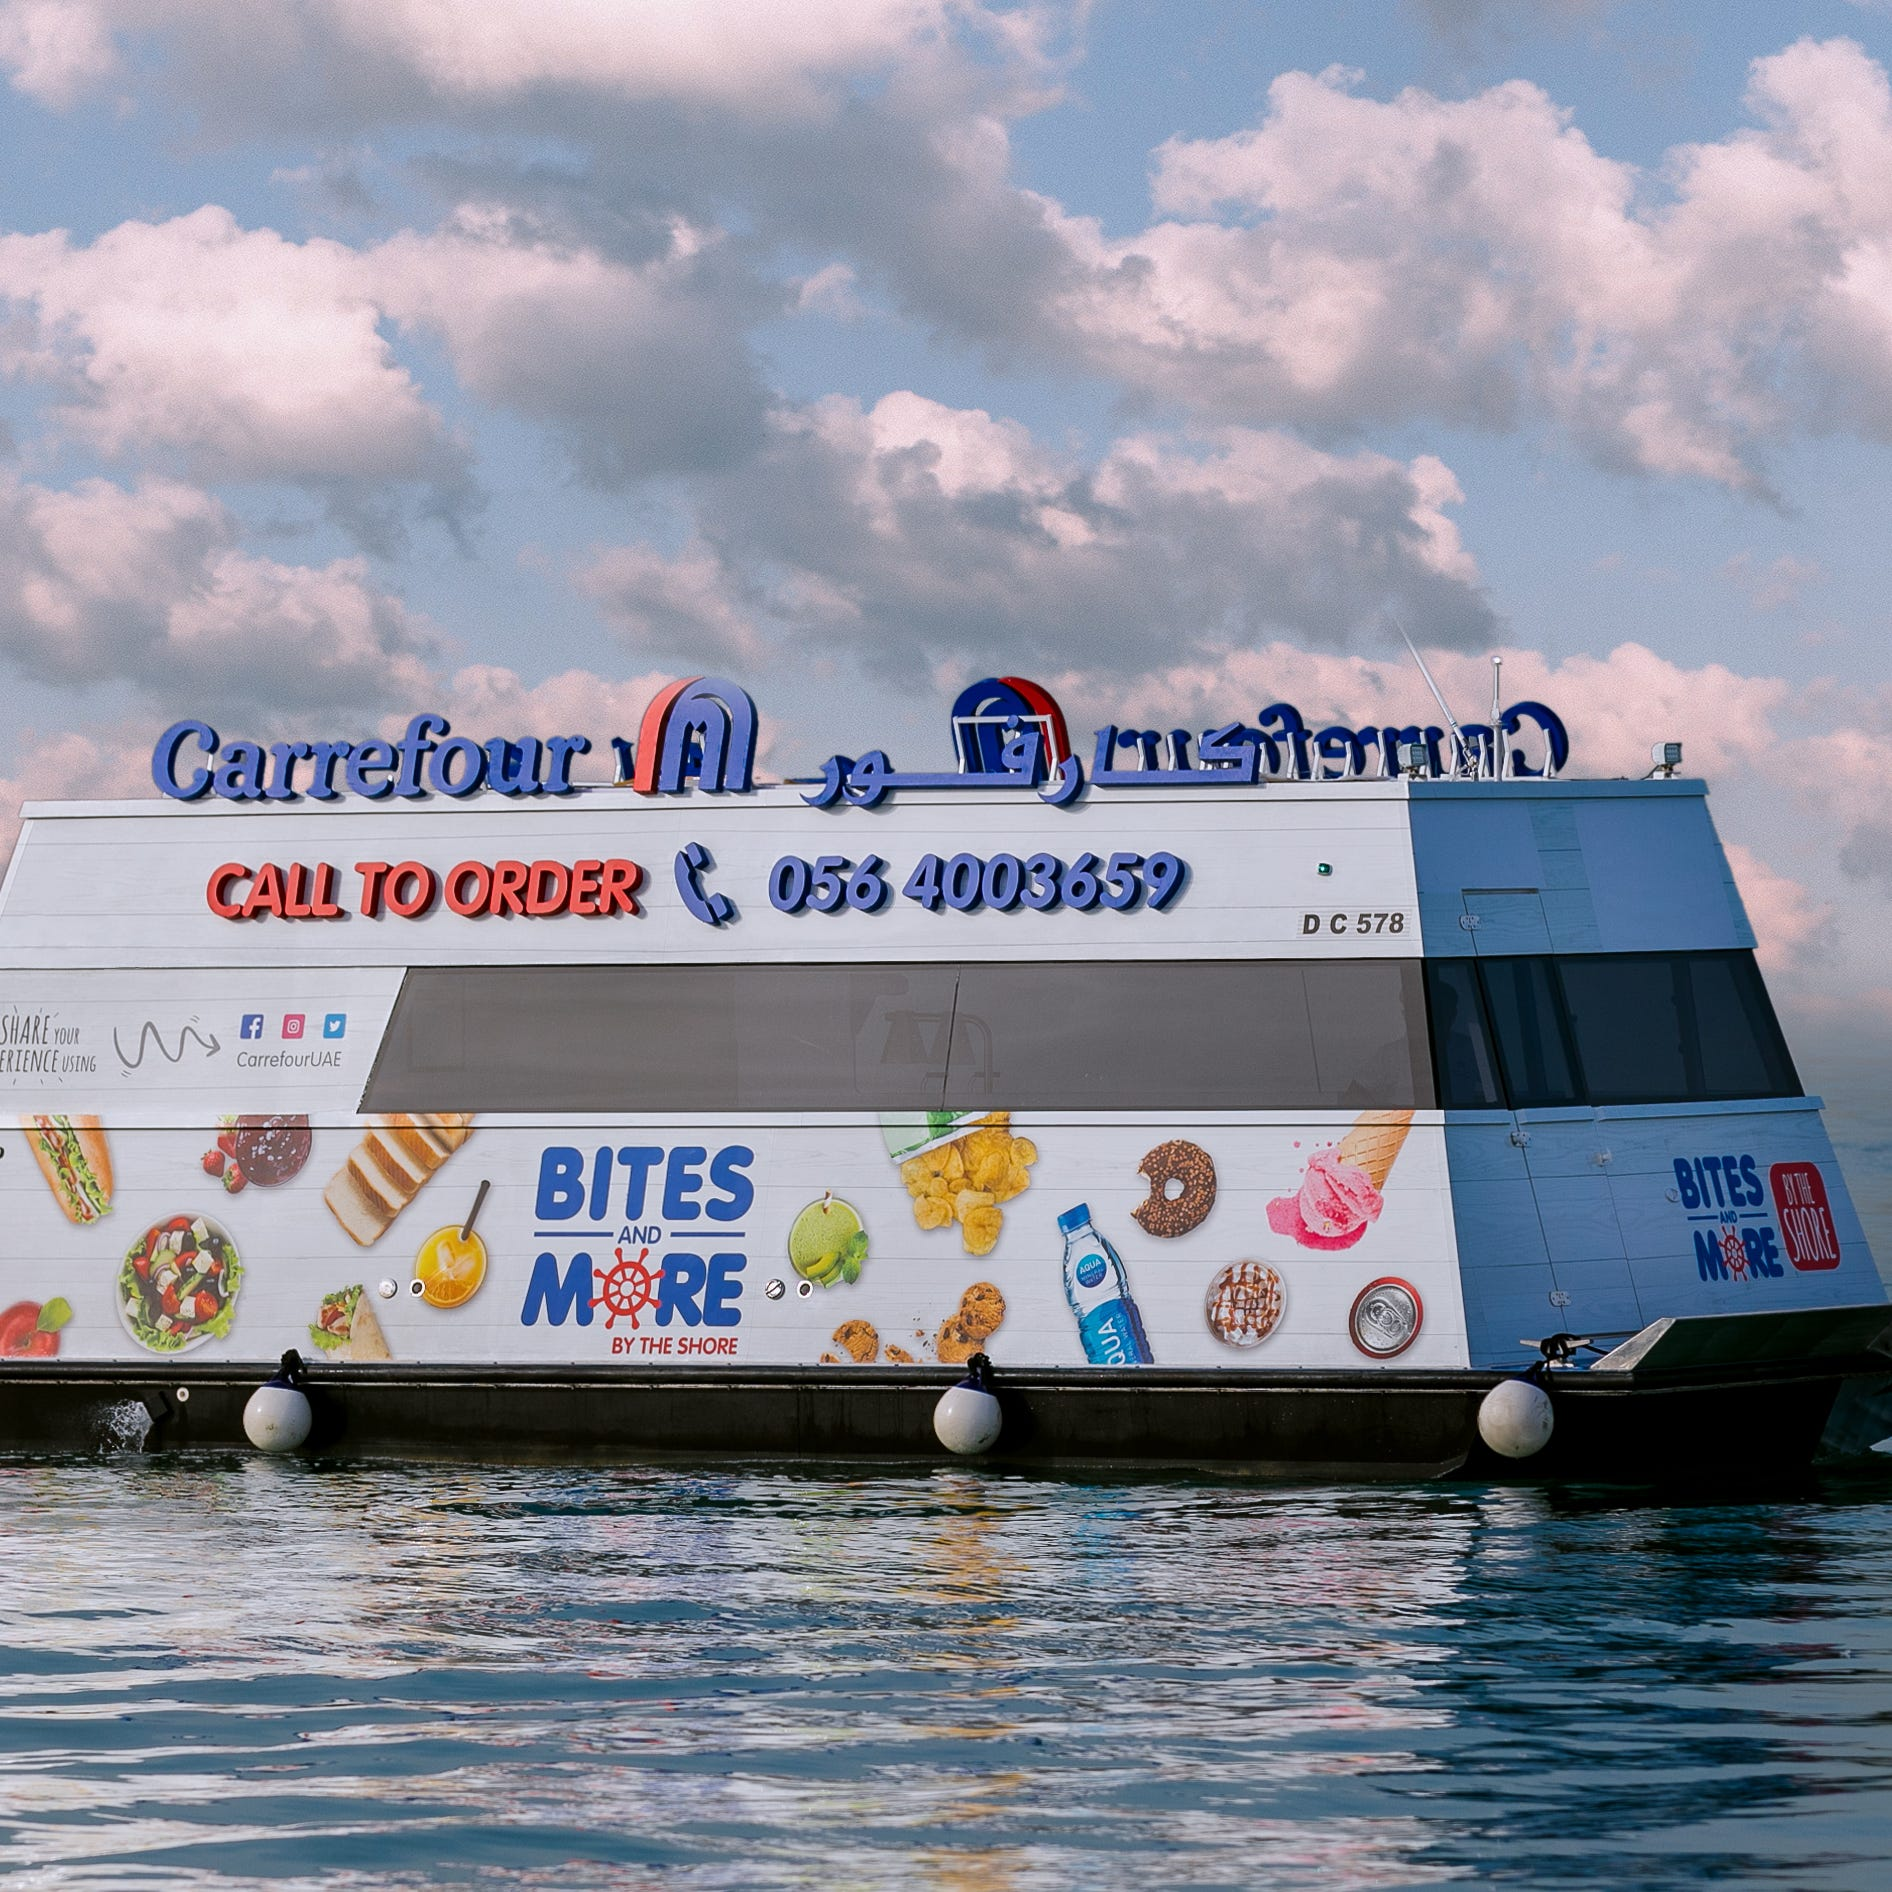 Carrefour Bites and More by the Shore sits in the Dubai waters ready for business